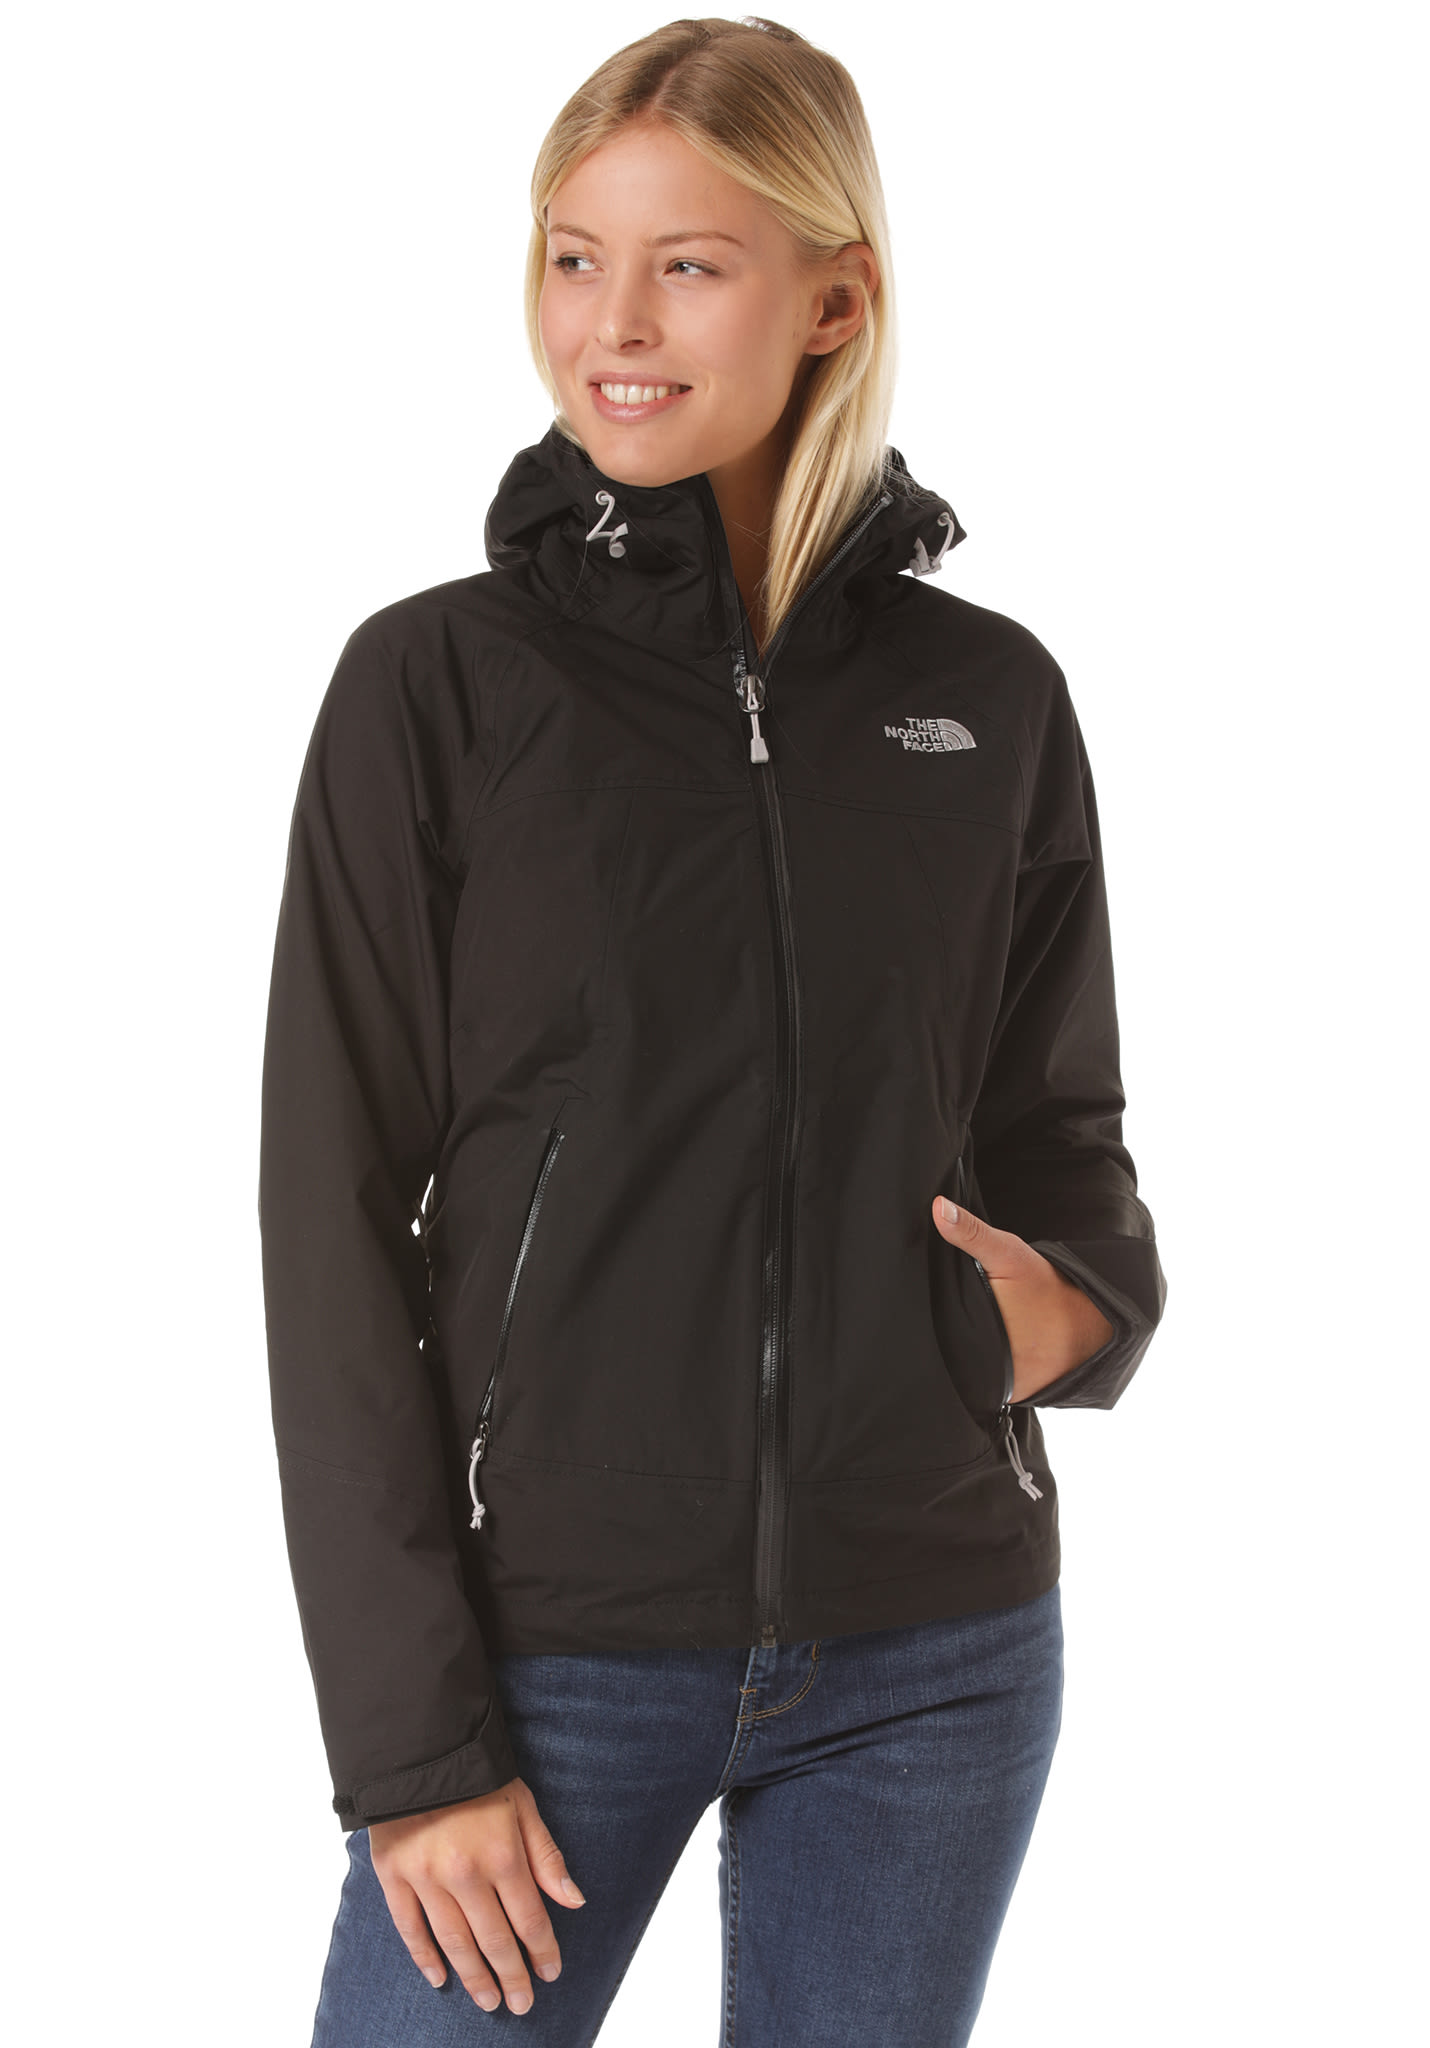 eb4b2442428b THE NORTH FACE Stratos - Functional Jacket for Women - Black - Planet Sports